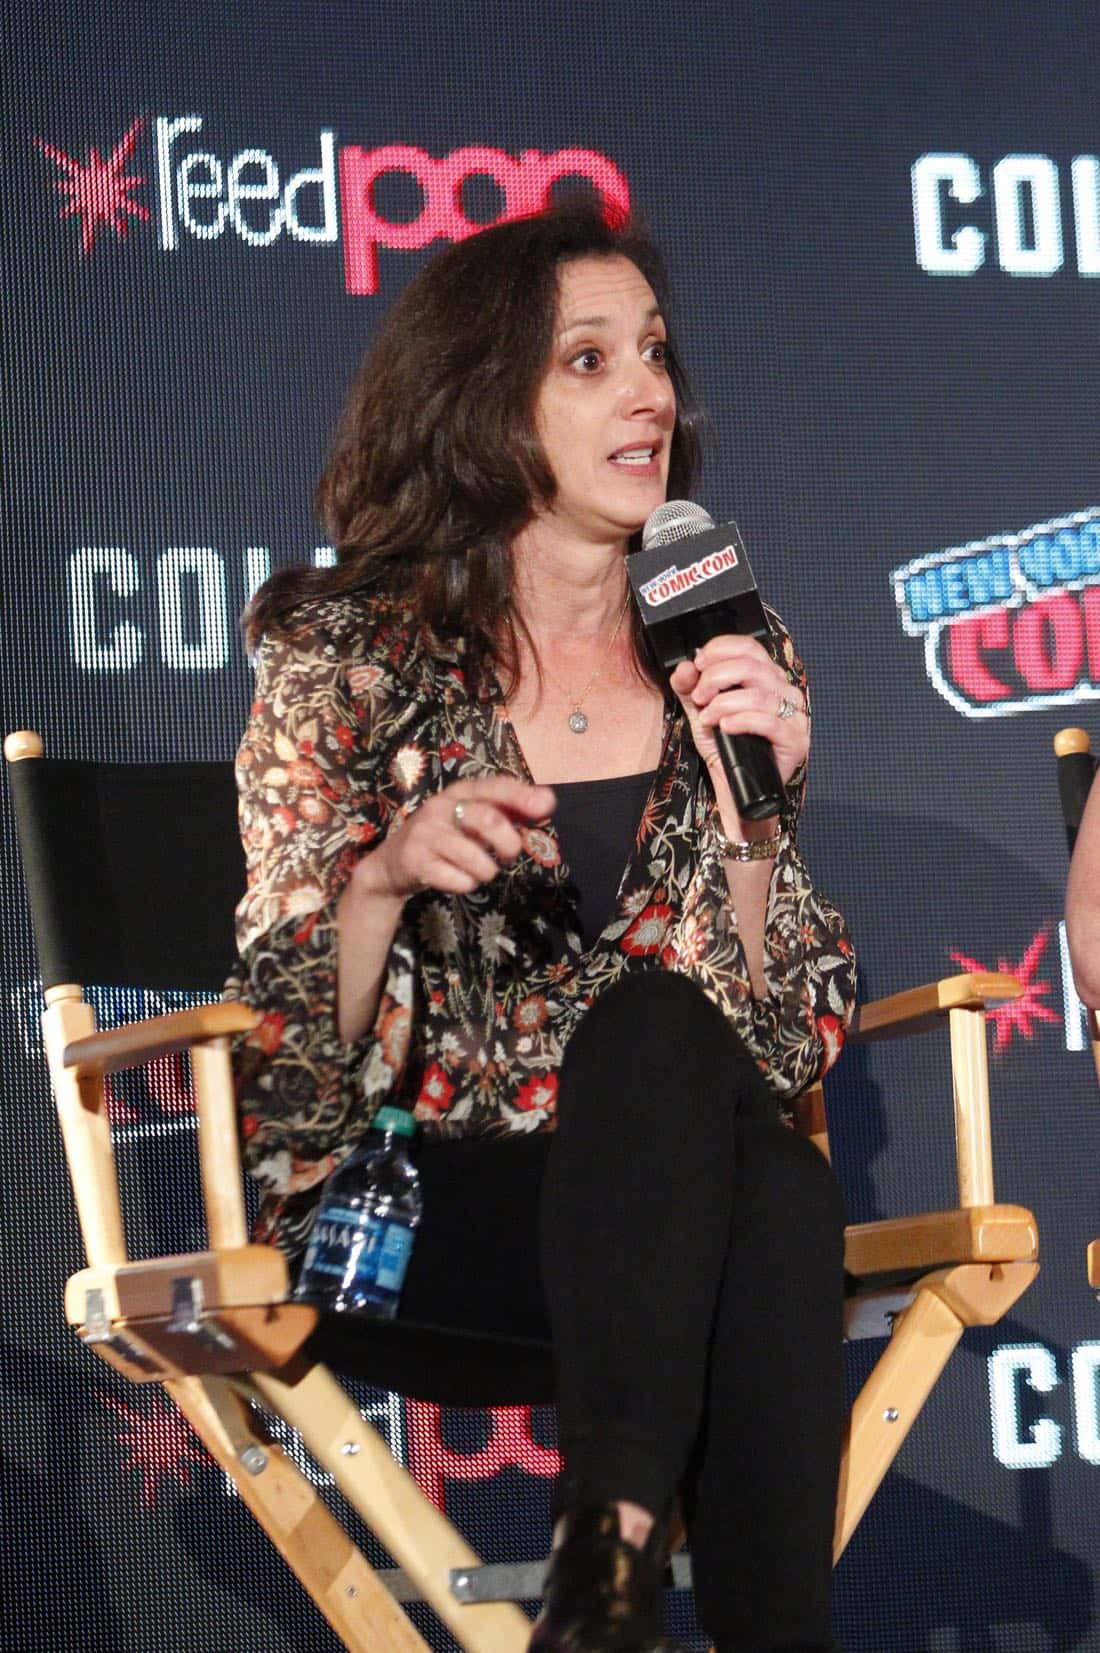 """NY COMIC-CON 2017 - SIREN - Freeform's genre programming was out in full force at this year's New York Comic Con on Saturday, October 7th with executive producers and cast from the hit series """"Shadowhunters,"""" """"Beyond,"""" and new original series """"Siren."""" (Freeform/Lou Rocco) EMILY WHITESELL (EXECUTIVE PRODUCER)"""